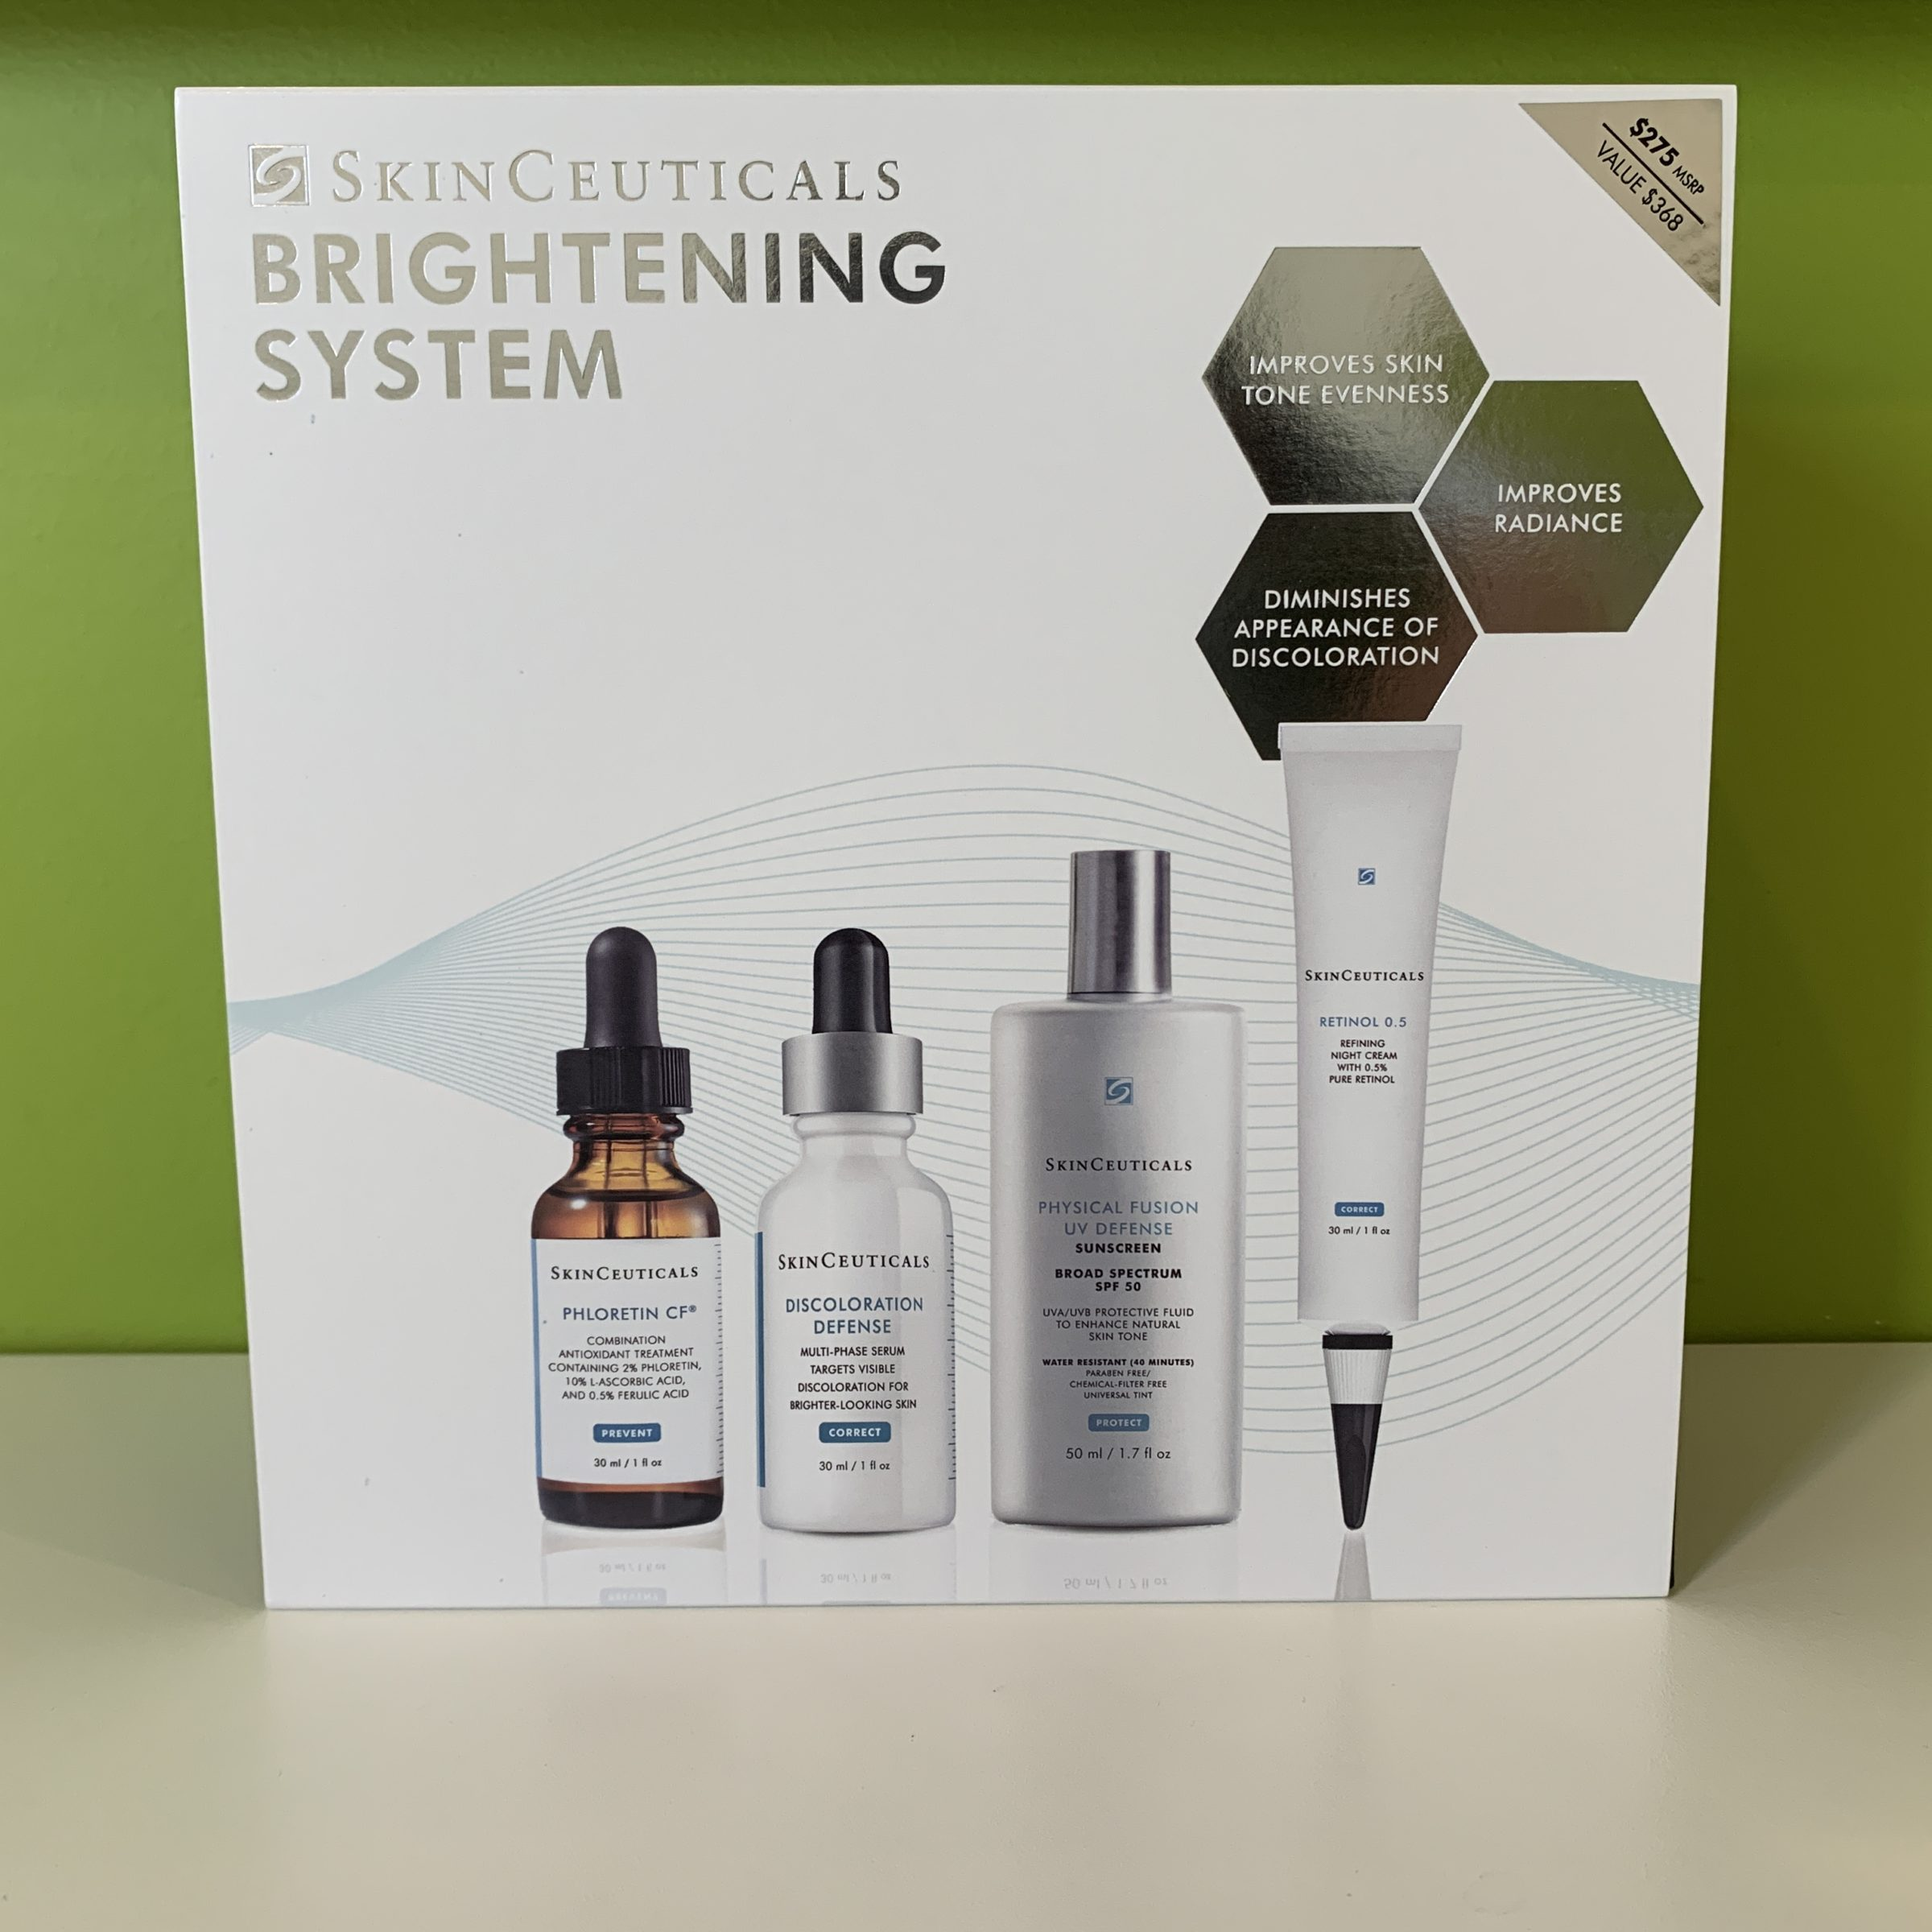 Brightening SKin System SkinCeuticals' Brightening Skin System Is A Four-step Regimen That Combats The Appearance Of Discoloration And Skin Tone Unevenness